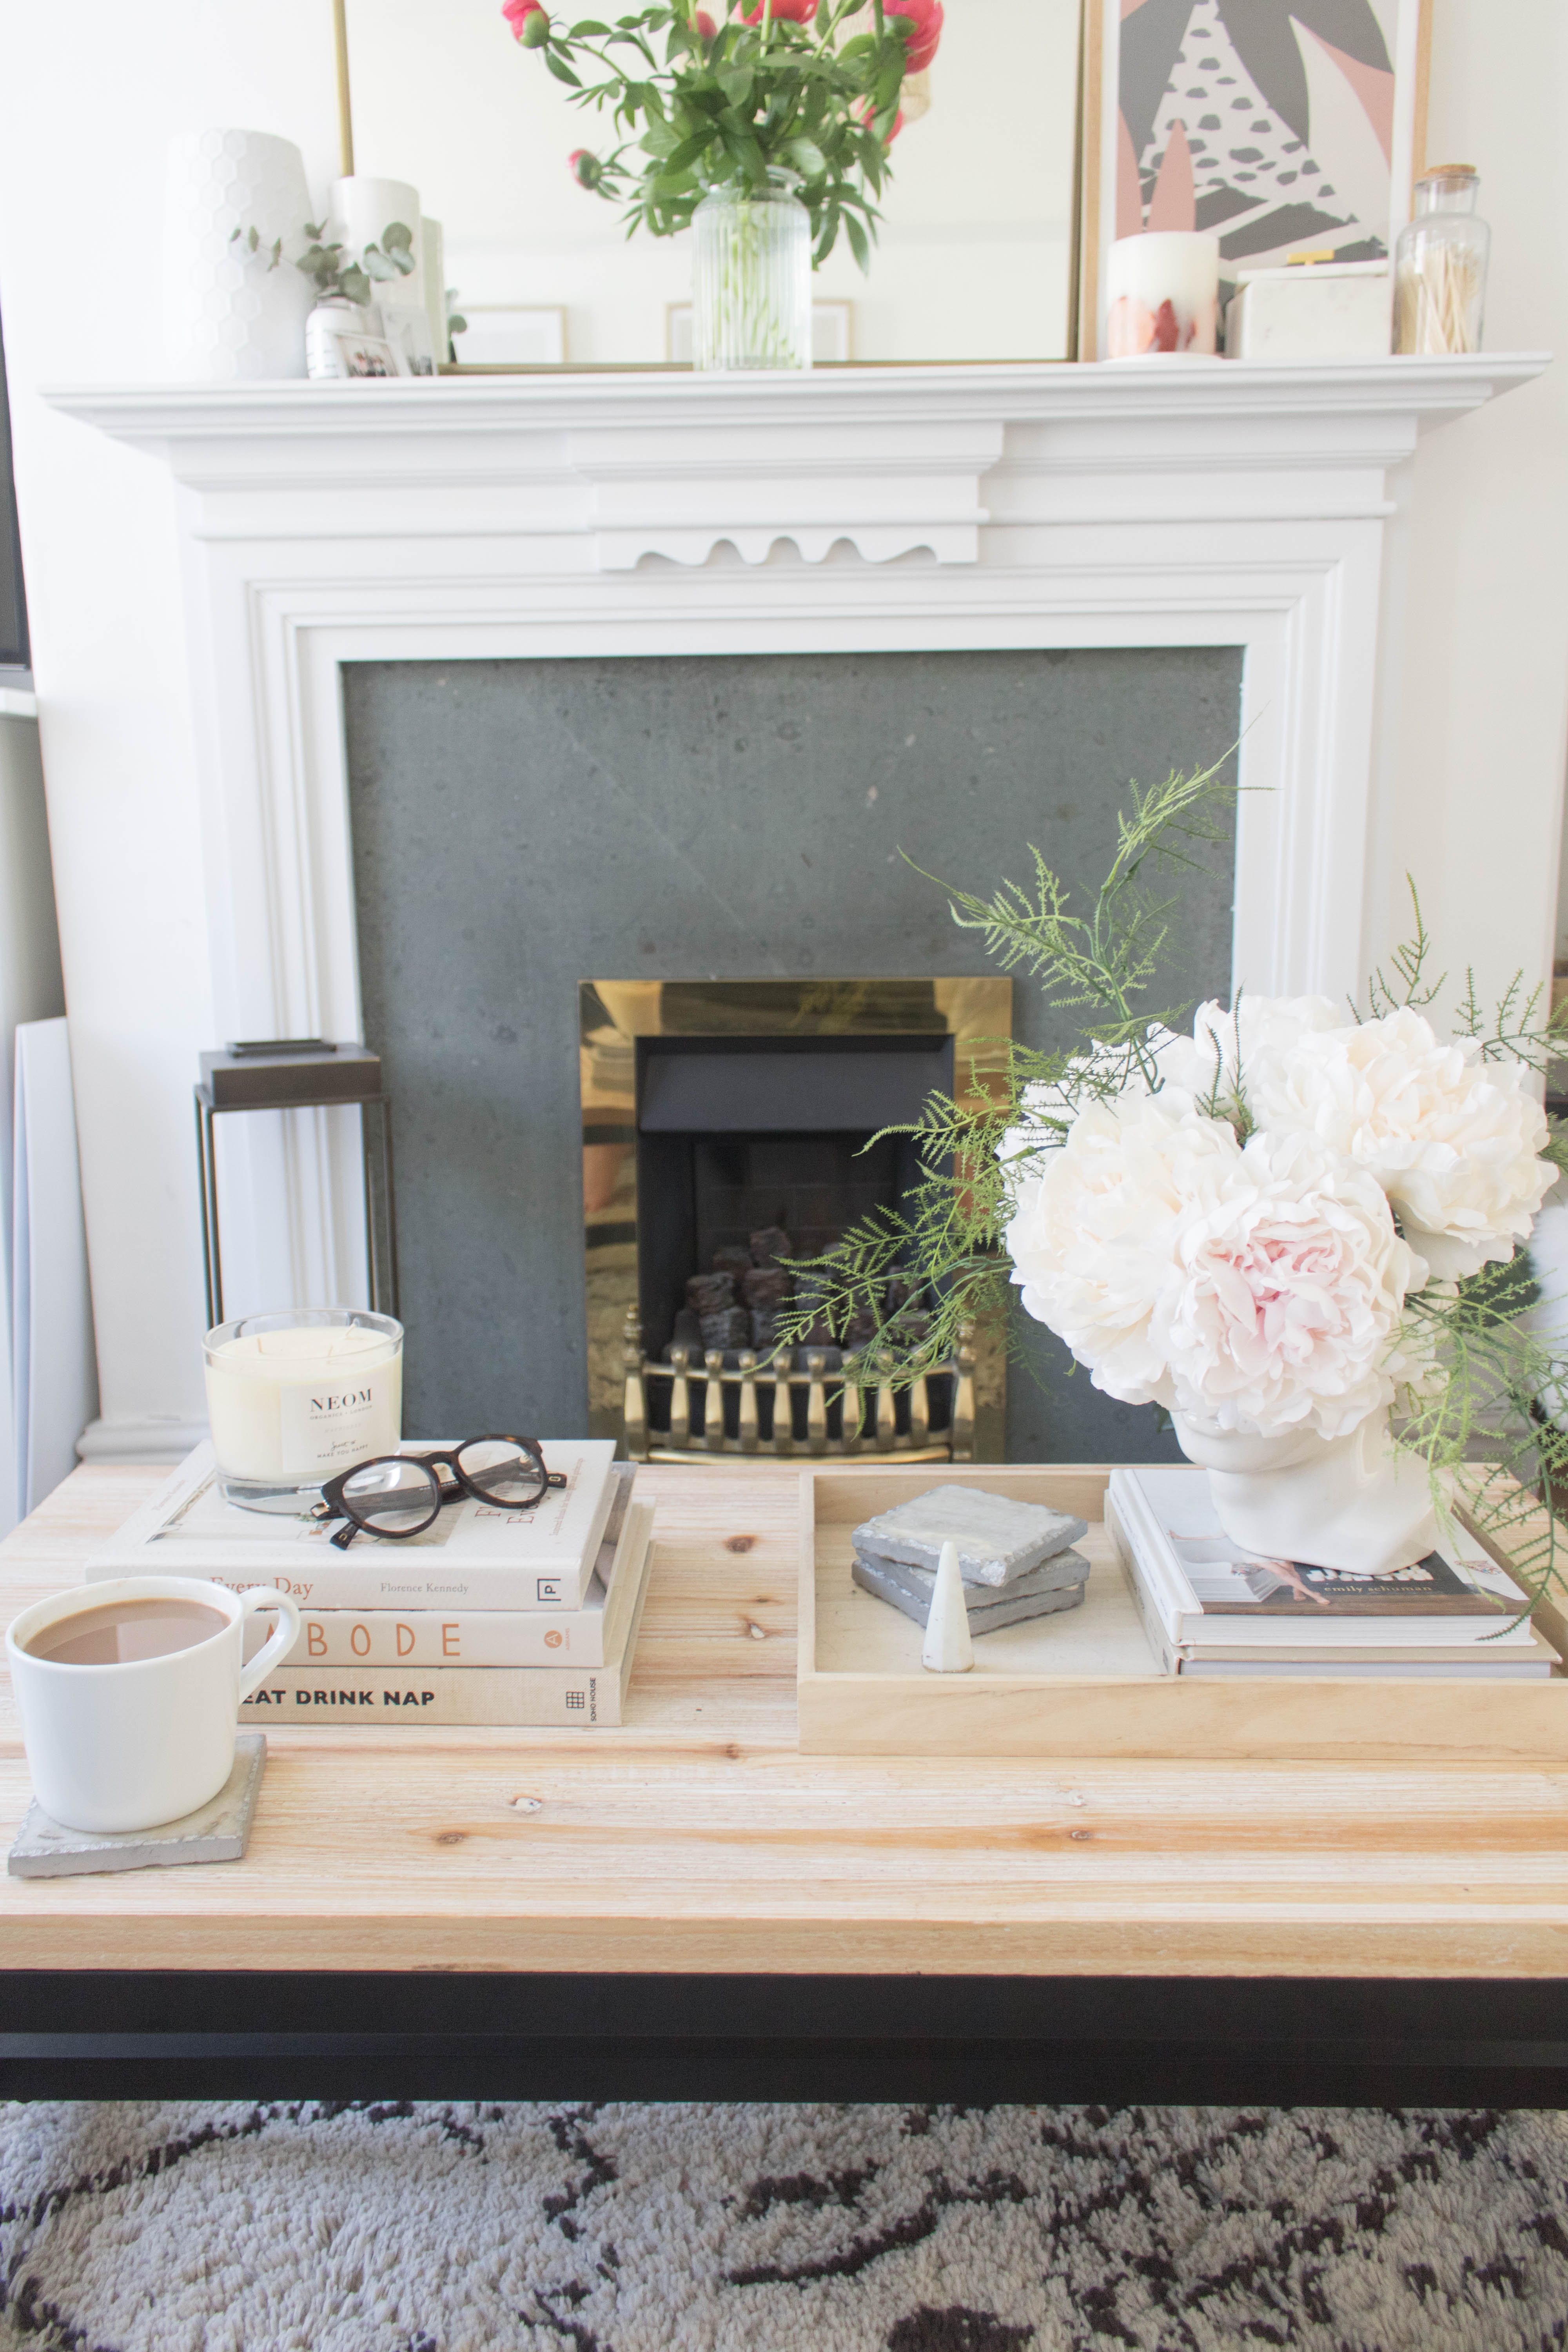 Styling a Coffee Table